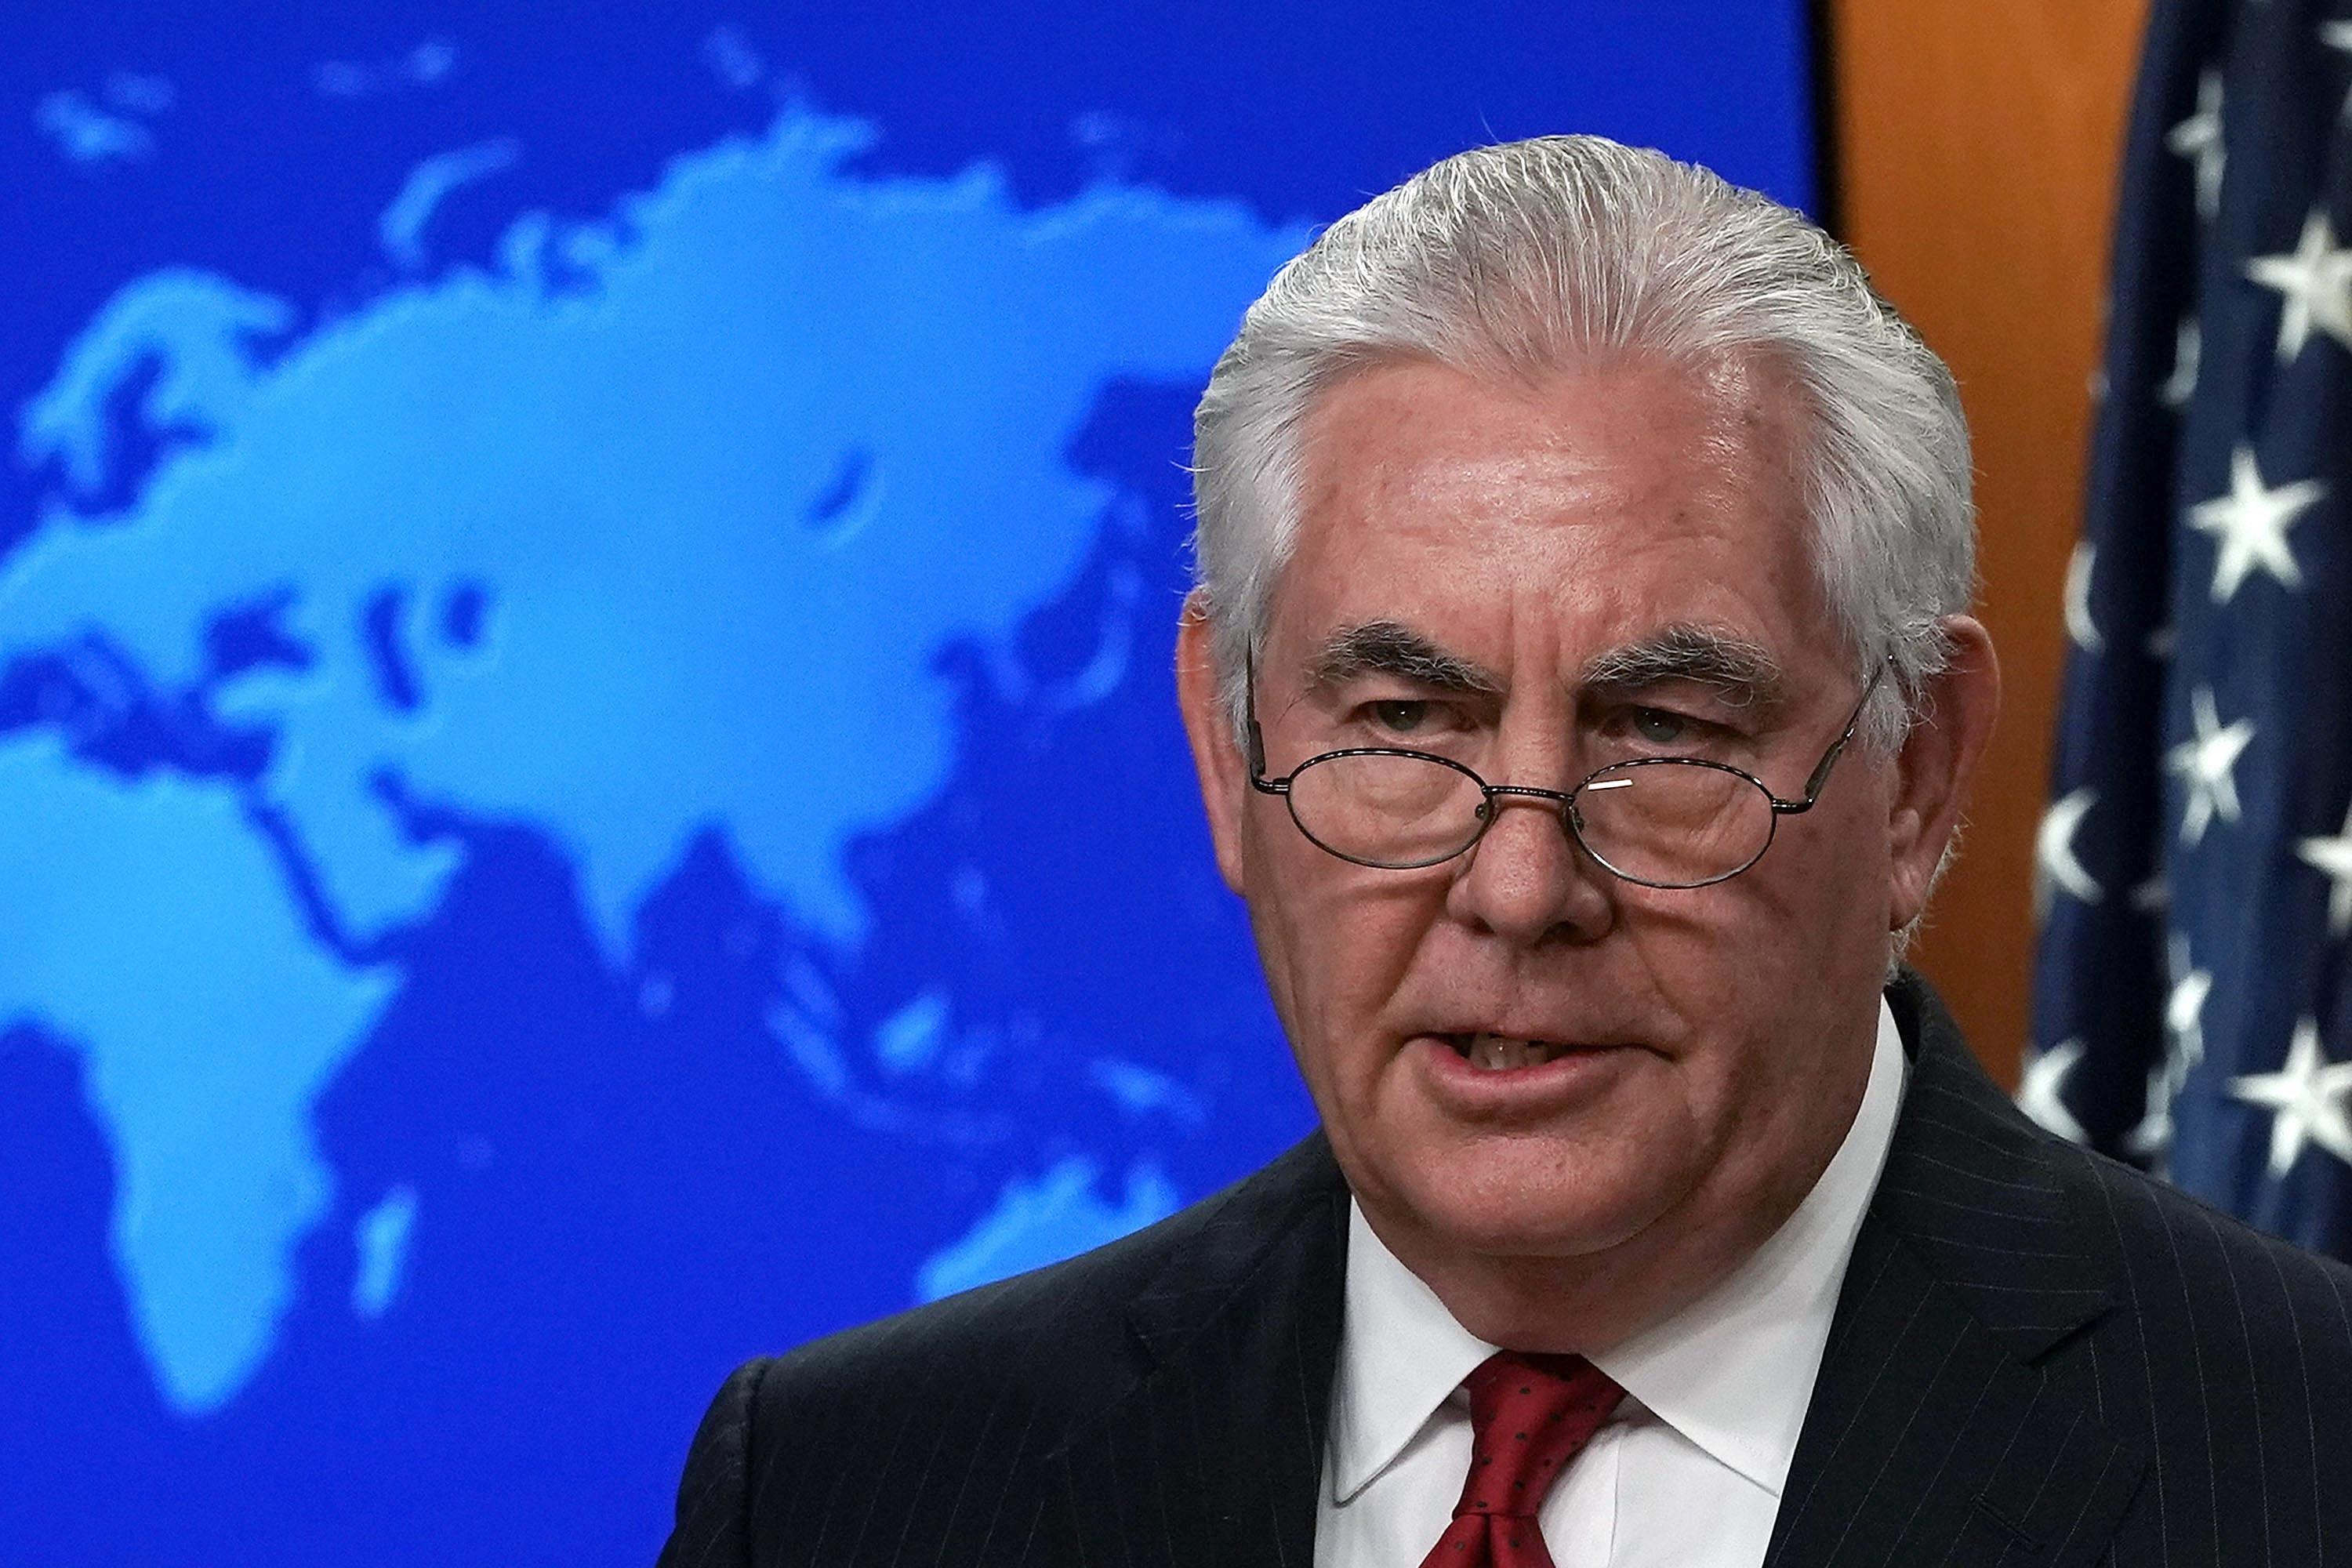 WASHINGTON, DC - MARCH 13:  Outgoing U.S. Secretary of State Rex Tillerson makes a statement on his departure from the State Department March 13, 2018 at the State Department in Washington, DC. President Donald Trump has nominated CIA Director Mike Pompeo to replace Tillerson to be the next Secretary of State.  (Photo by Alex Wong/Getty Images)